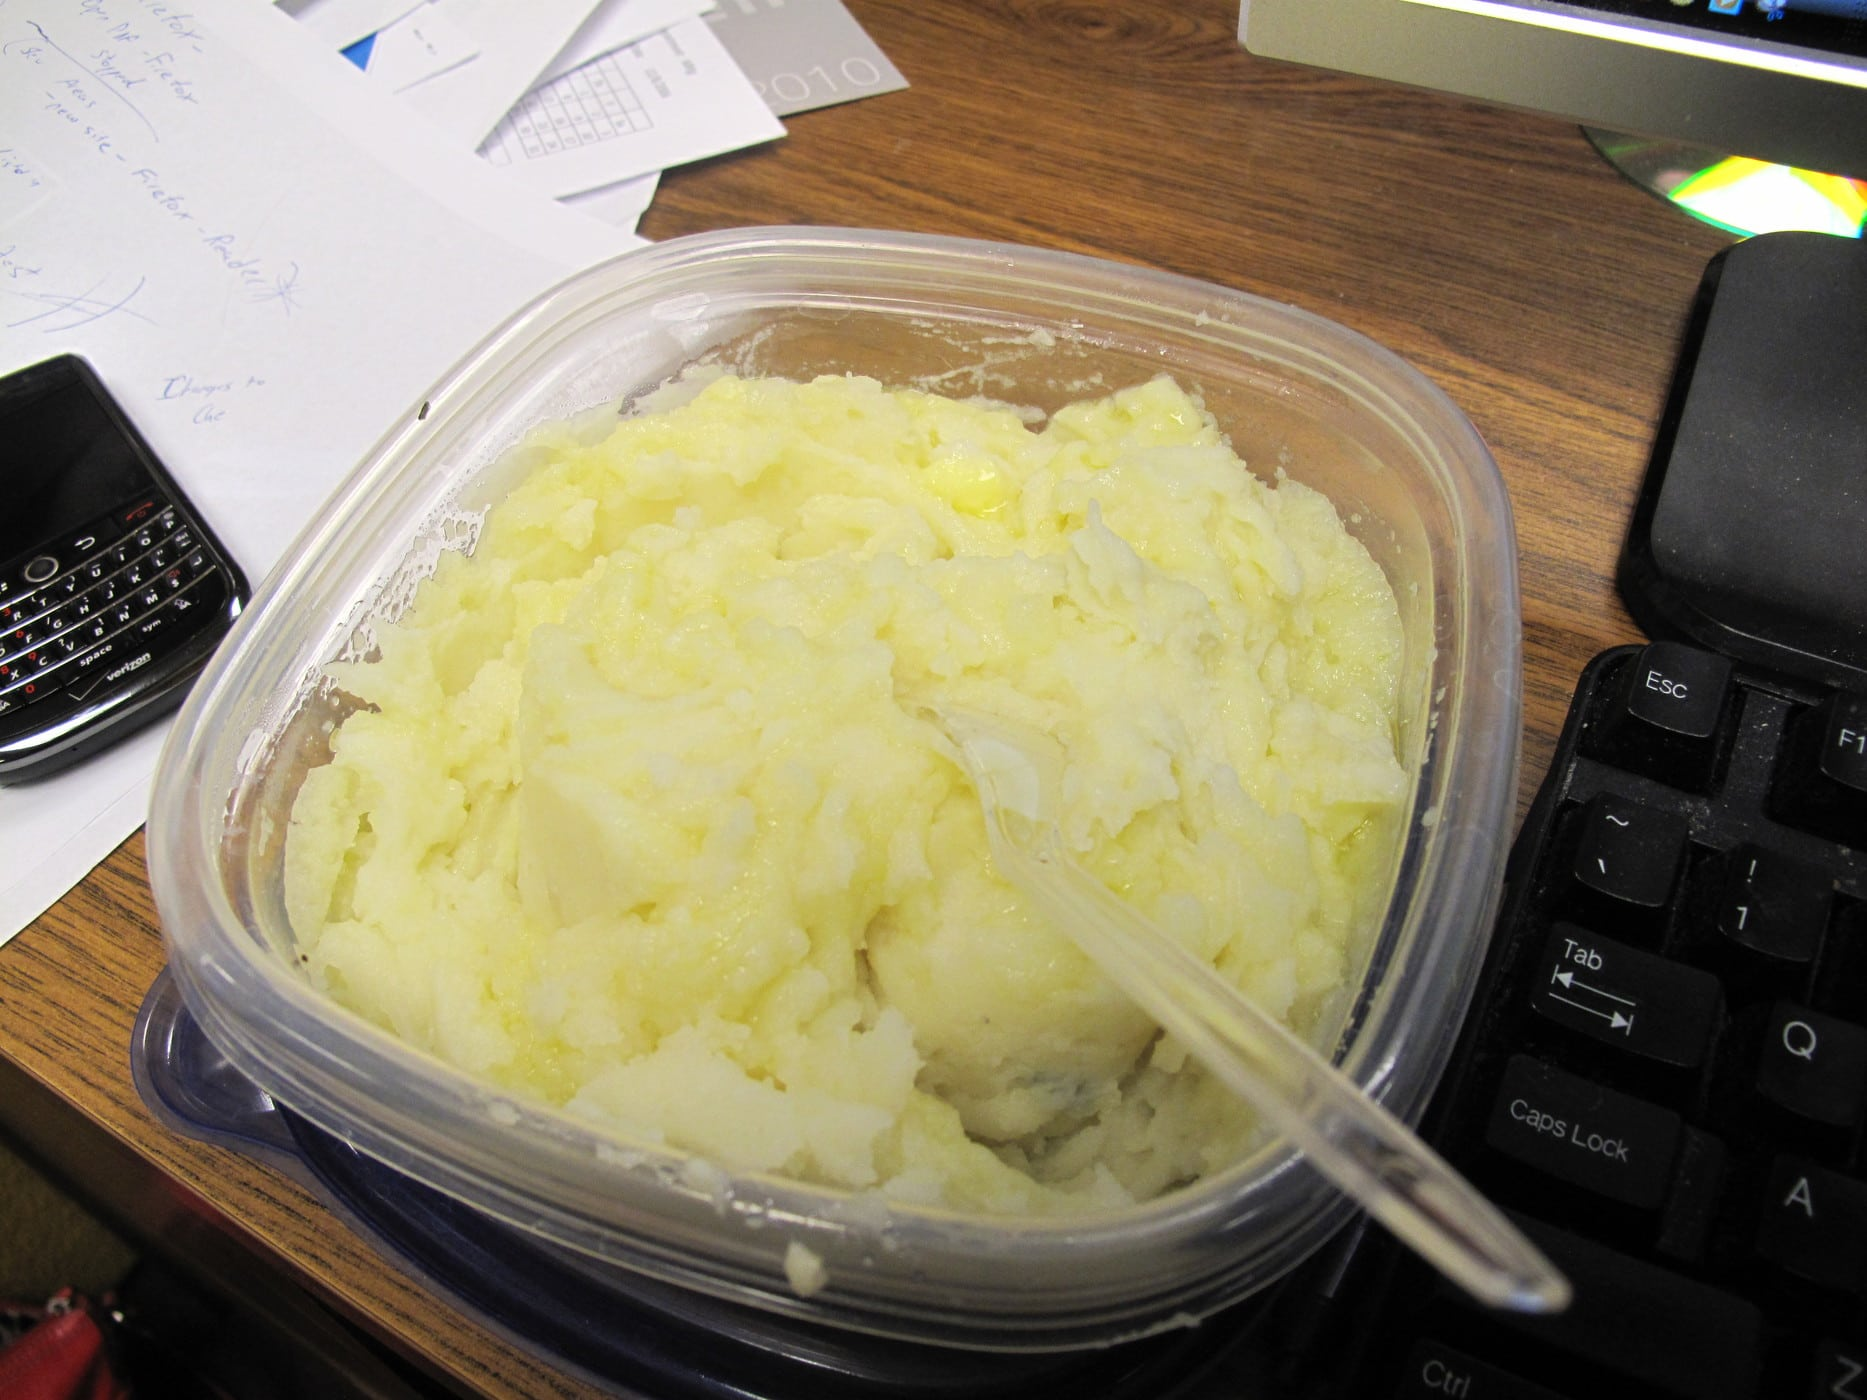 Wisdom Tooth Diet - Mashed Potatoes